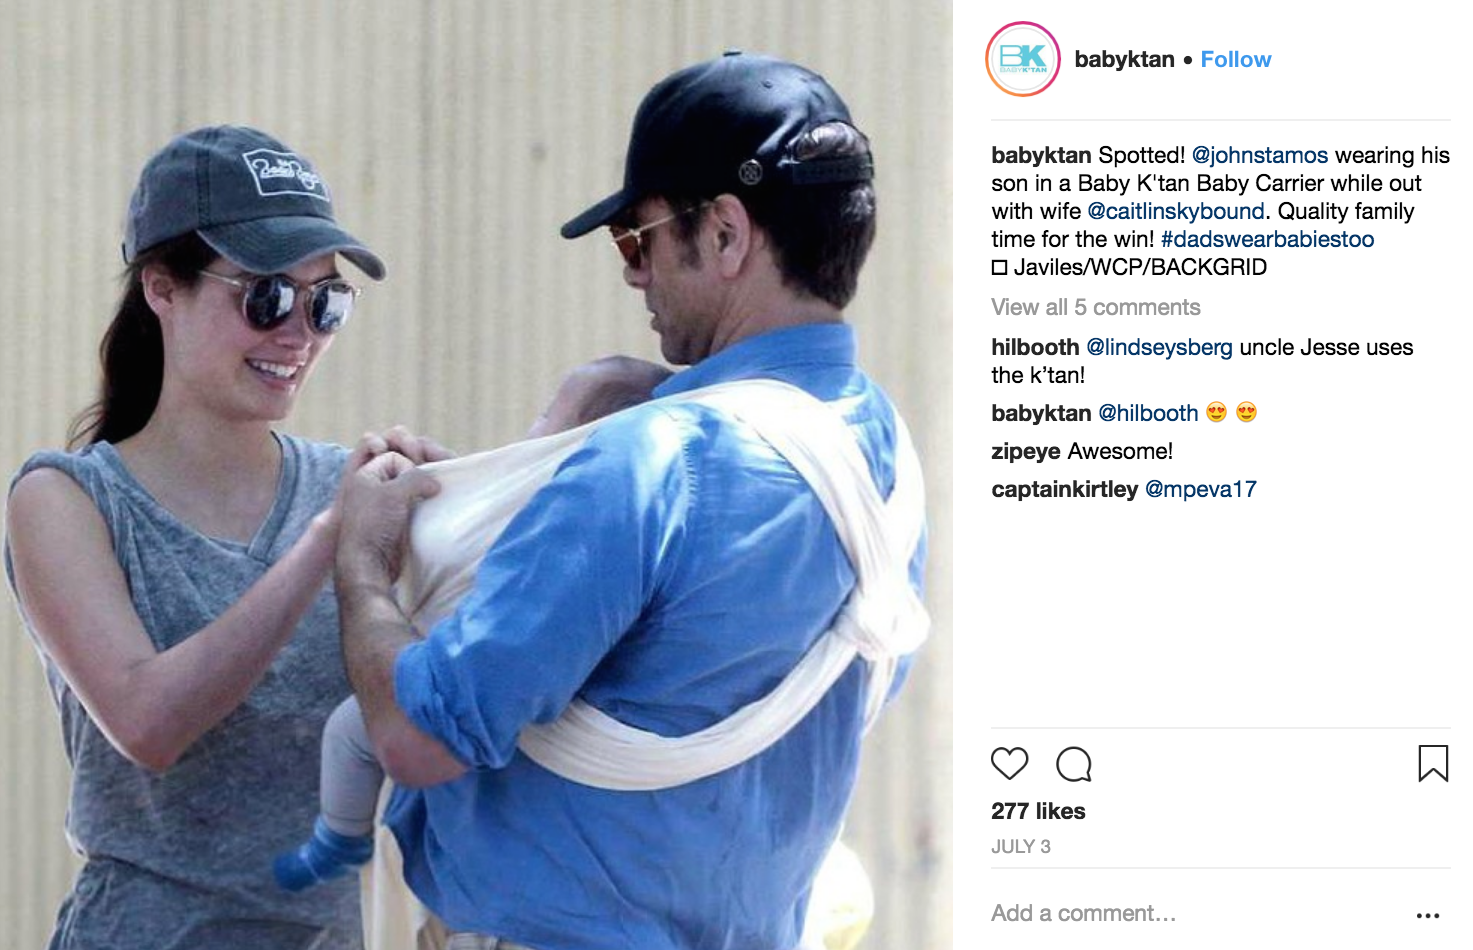 John Stamos' Baby Carrier